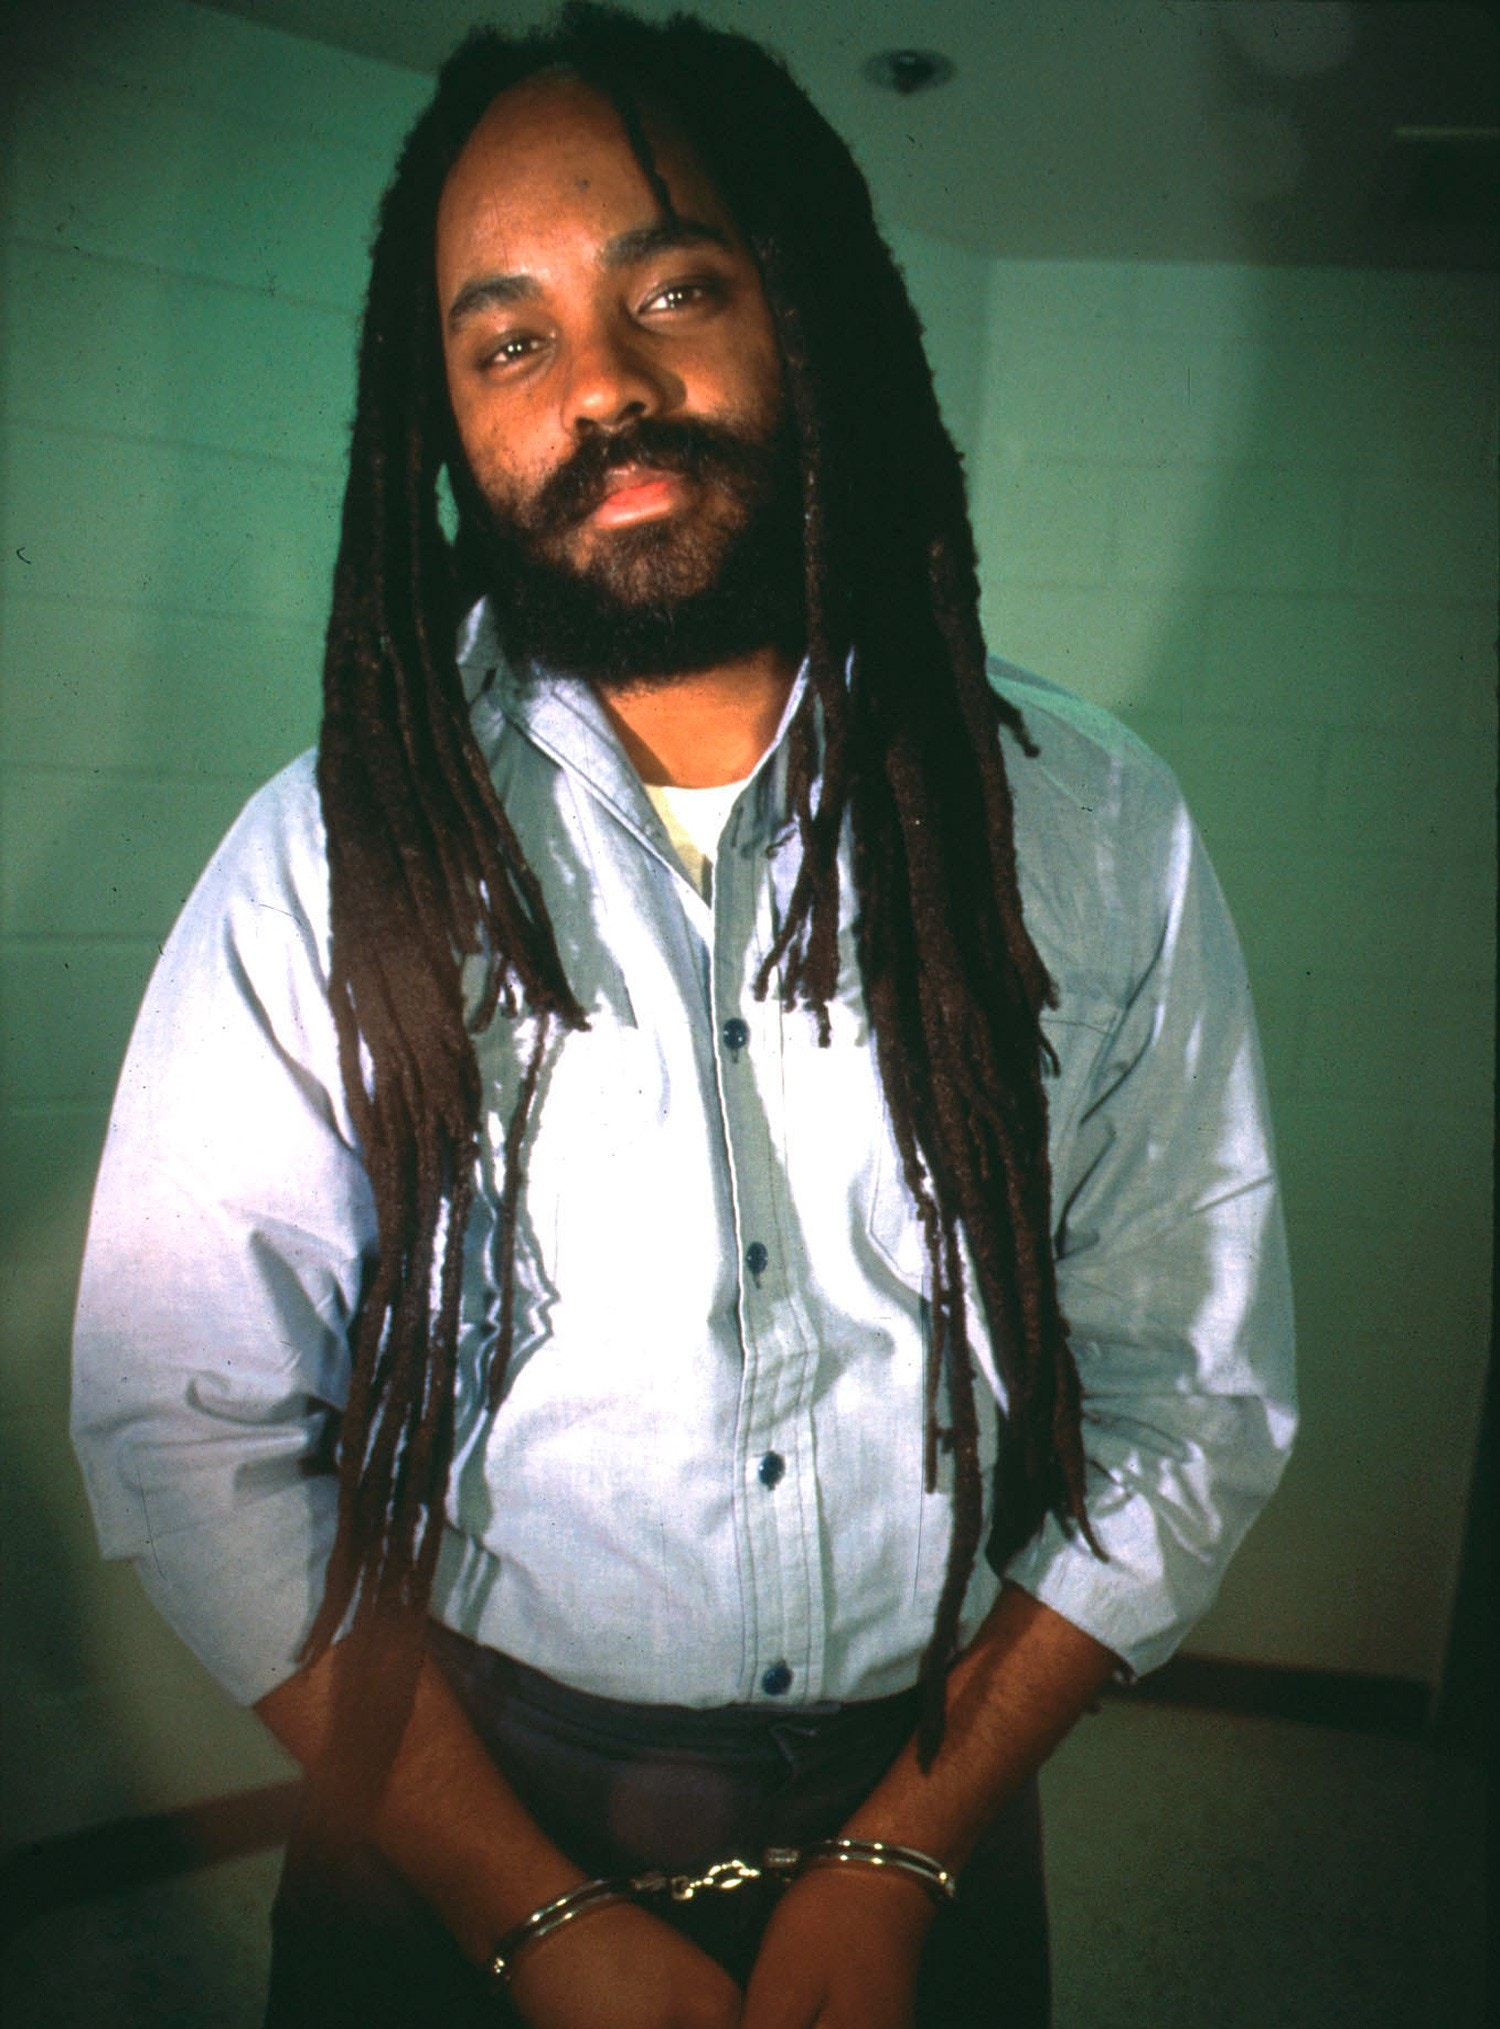 N 248921 03: ***EXCLUSIVE*** Pennsylvania death row inmate Mumia Abu-Jamal, seen here in a December 13, 1995 photo from prison, was convicted in 1982 of murdering a Philadelphia policeman. Police in Washington D.C. arrested dozens of Abu-Jamal supporters February 28, 2000, who were demanding a new trial for Abu Jamal, and the abolition of the death penalty in the United States. (Photo by Lisa Terry / Liaison Agency)